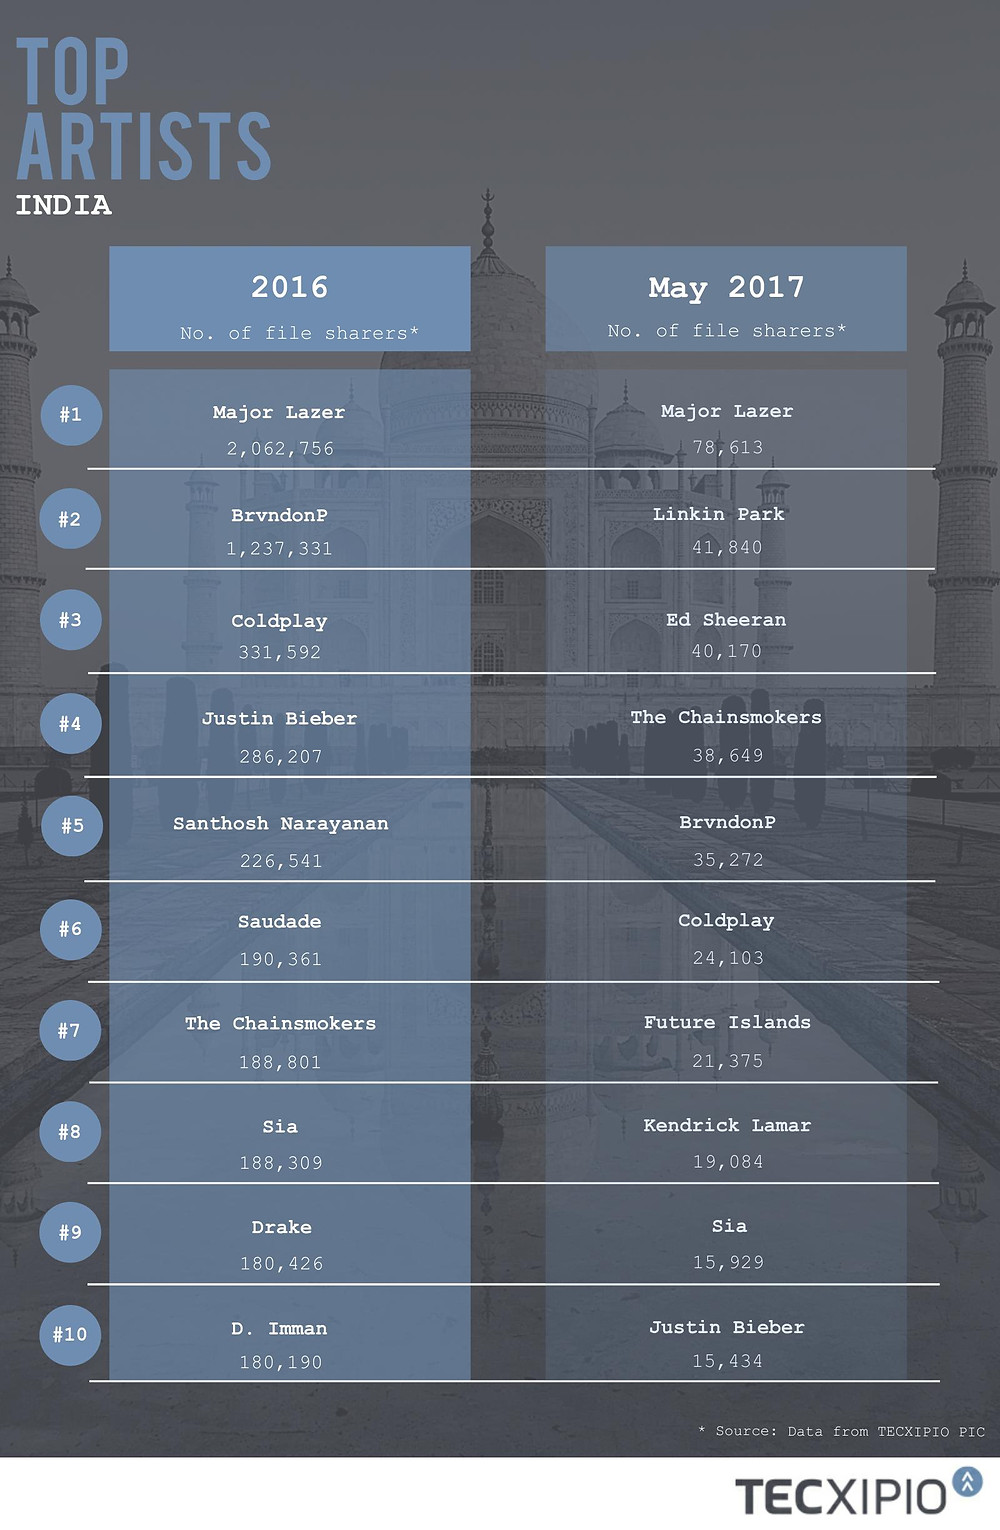 TECXIPIO infographic about the Top10 most popular music artists in India 2016 vs May 2017, based on number of file sharers. The most popular Indian music artist in 2016 was Santhosh Narayanan, followed by D. Imman. The most popular music artist among Indian file sharers was Major Lazer.